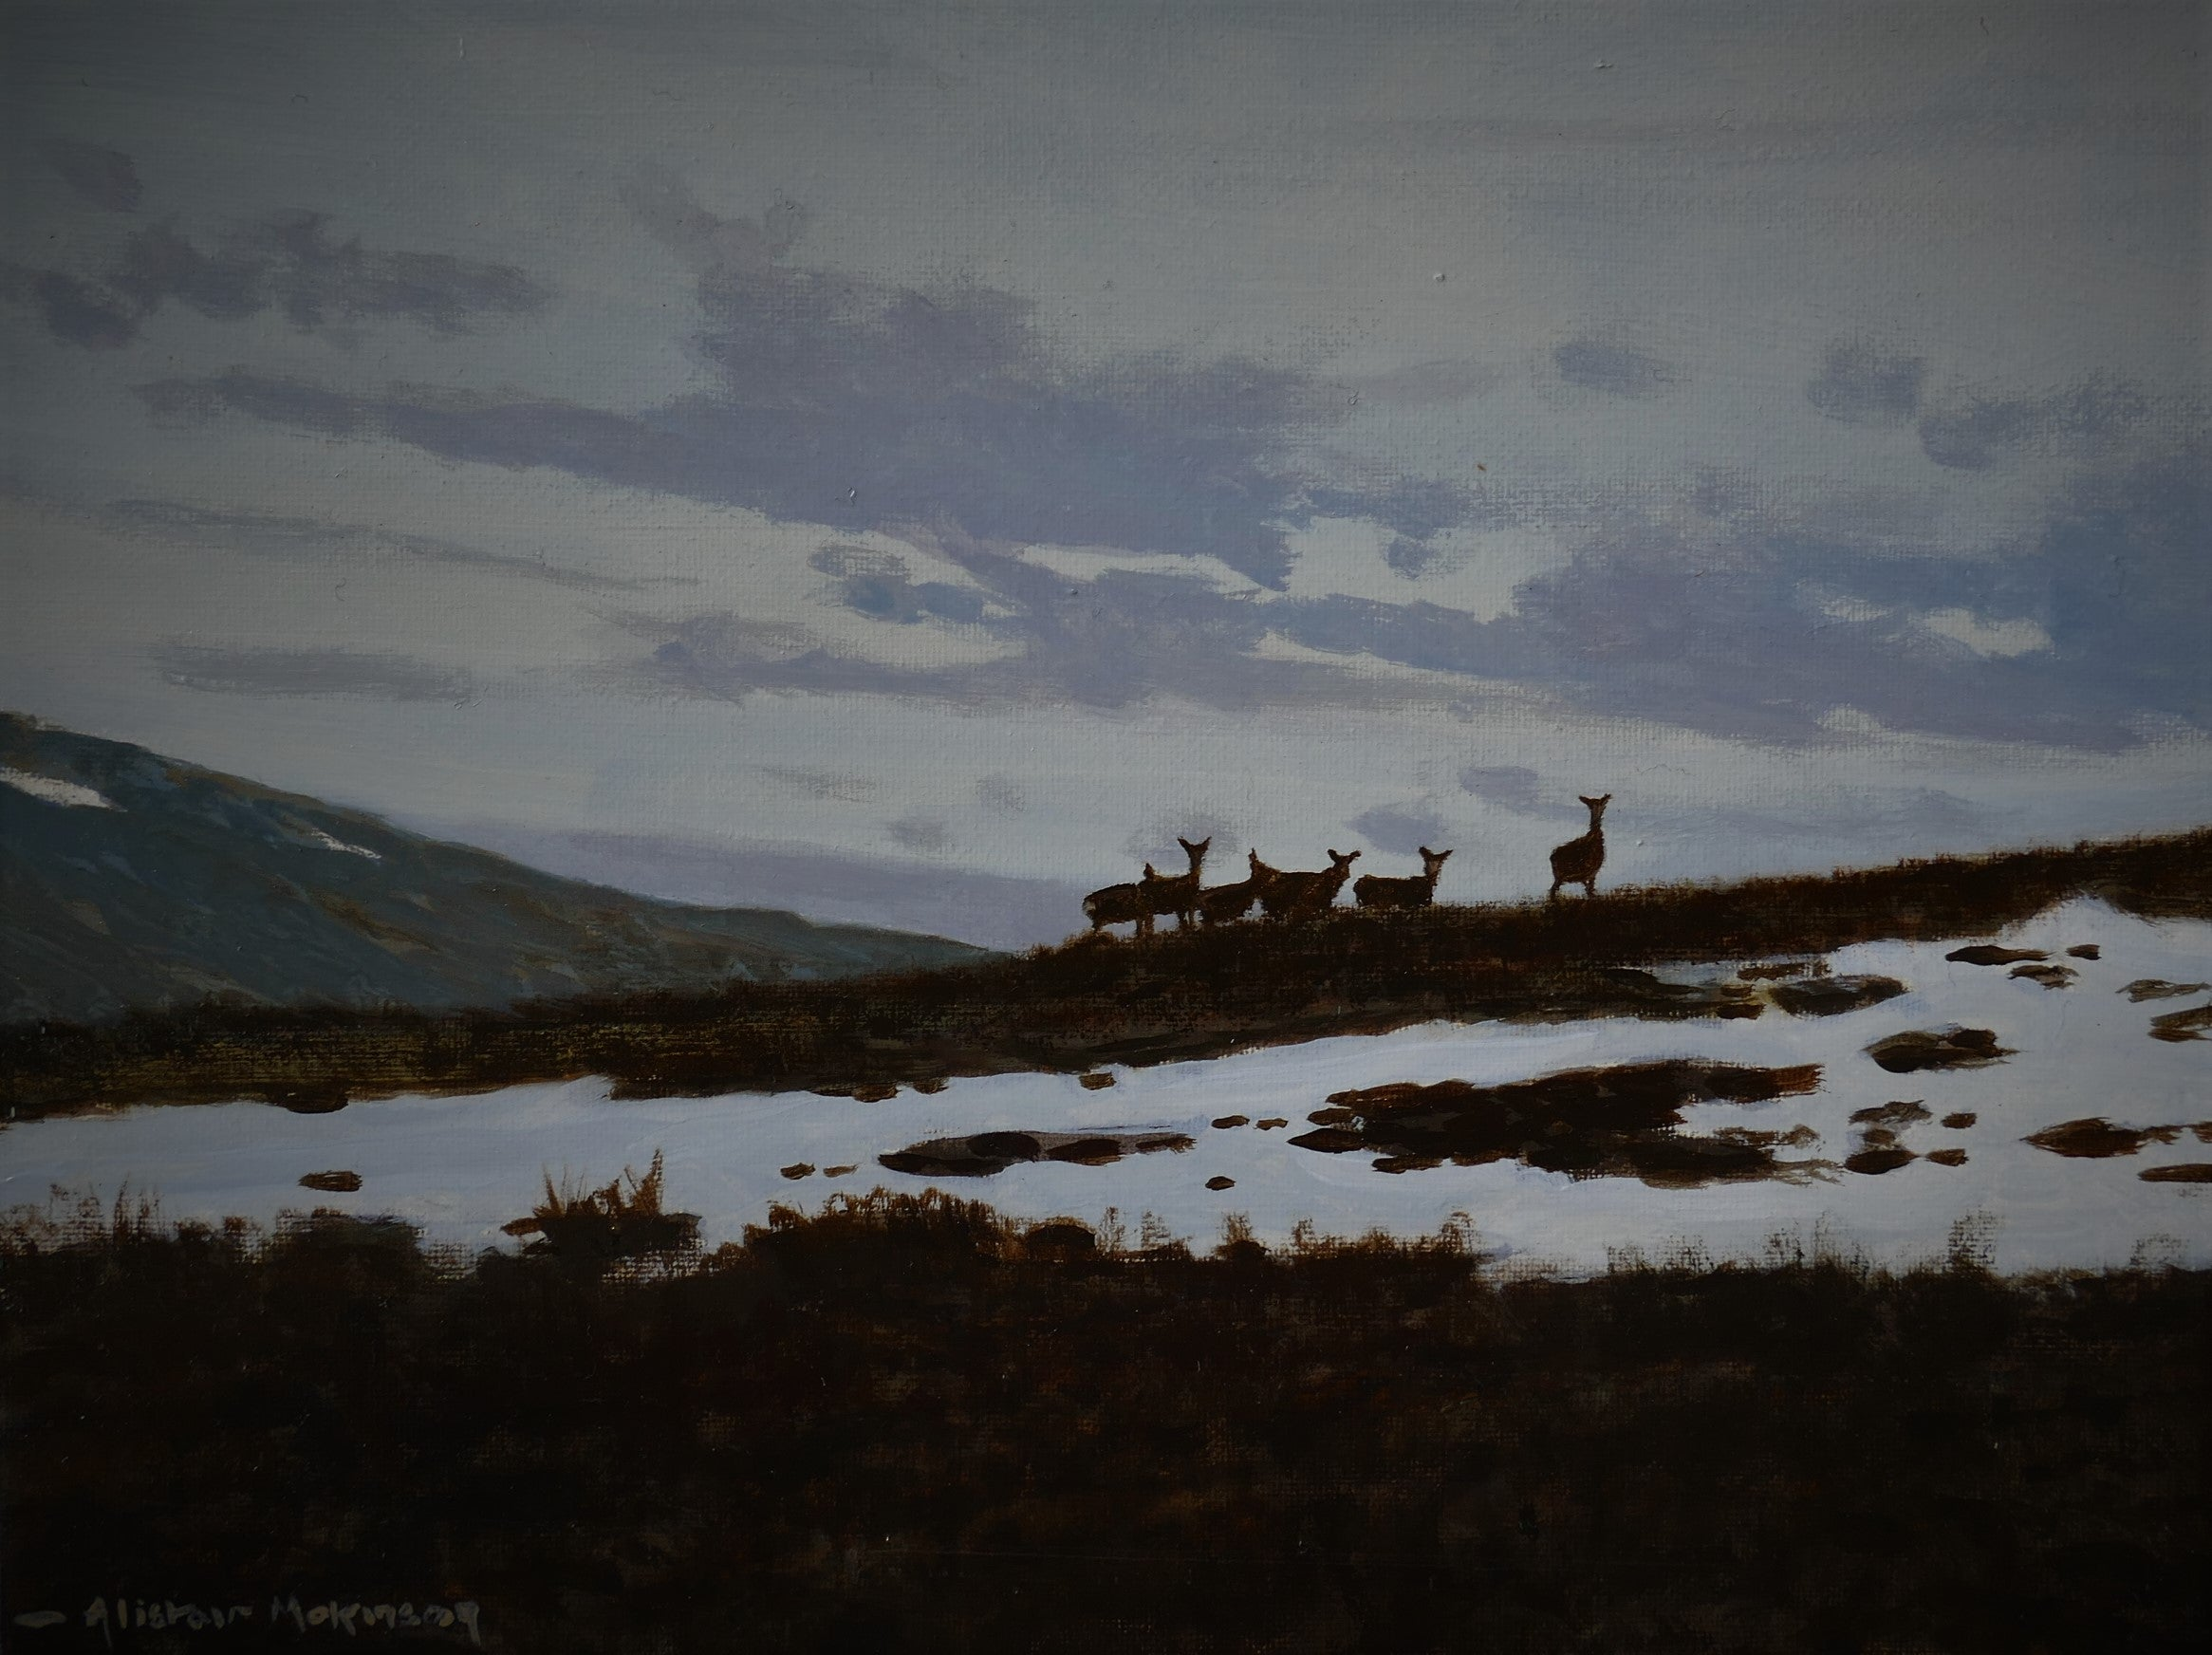 'Winter Hinds' - Original Oil Painting by Alistair Makinson - 18 x 24cm